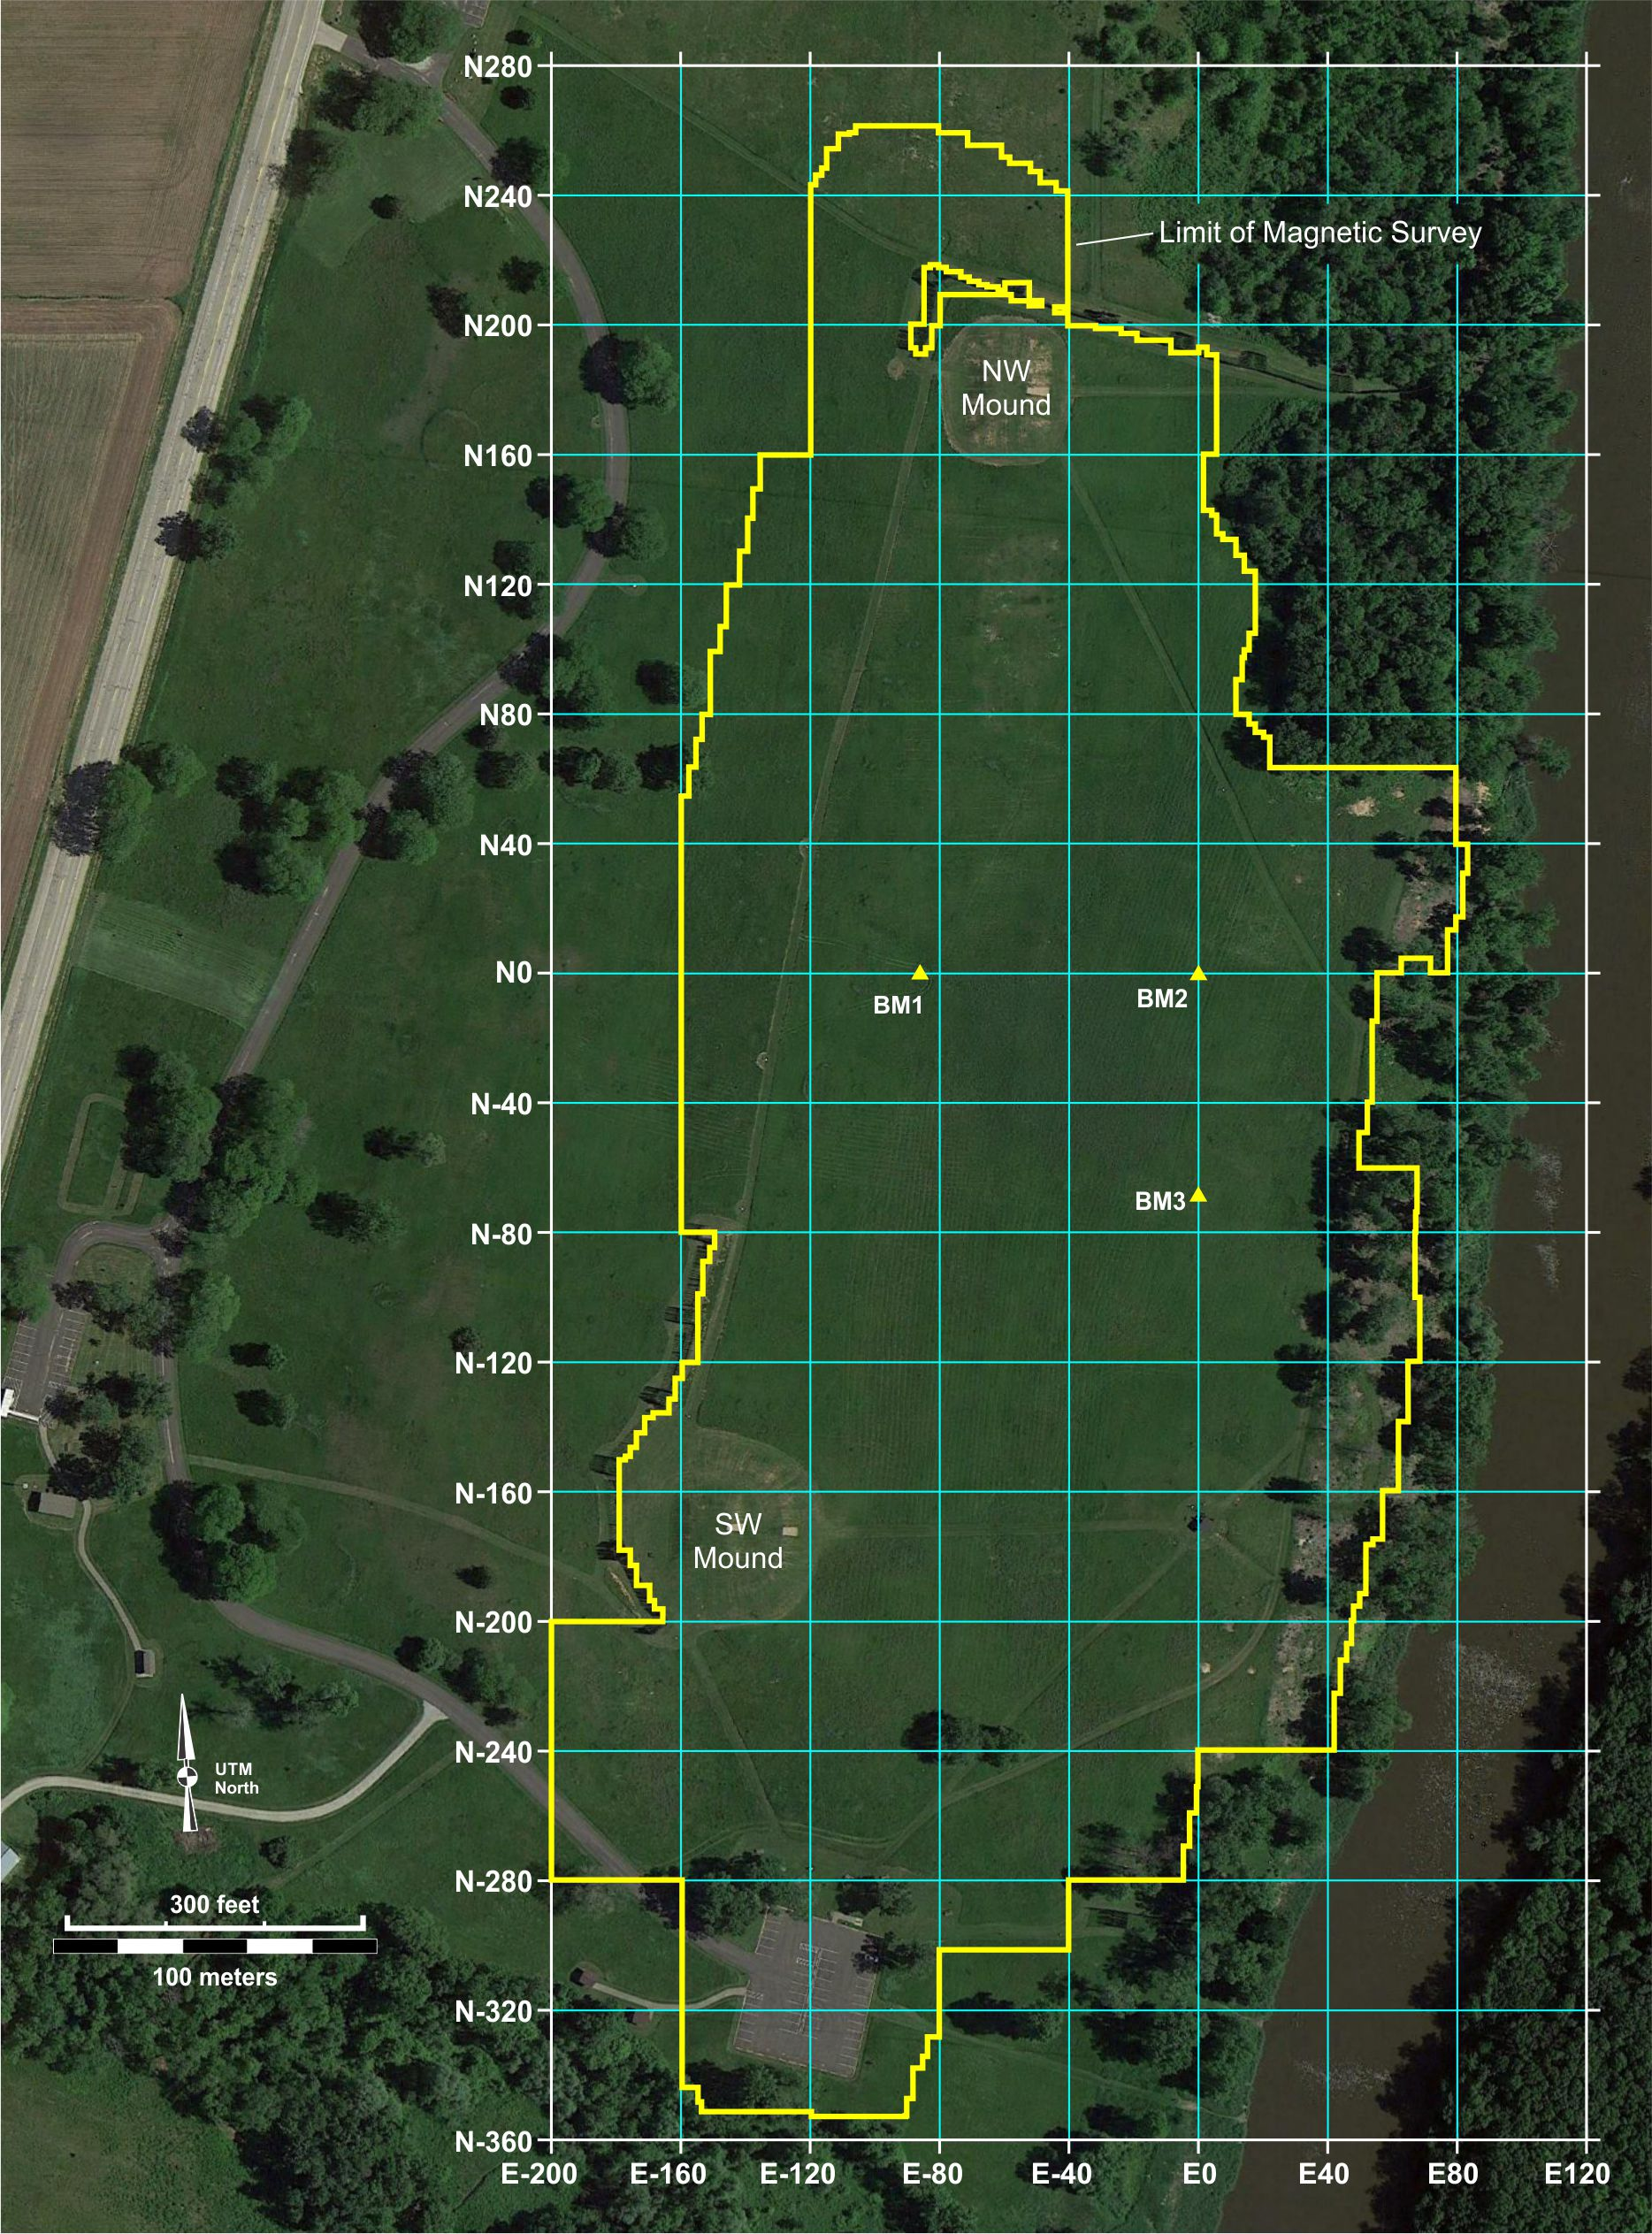 Figure 14. Geophysical survey grid used at Aztalan State Park, with the site's three mapping benchmarks.